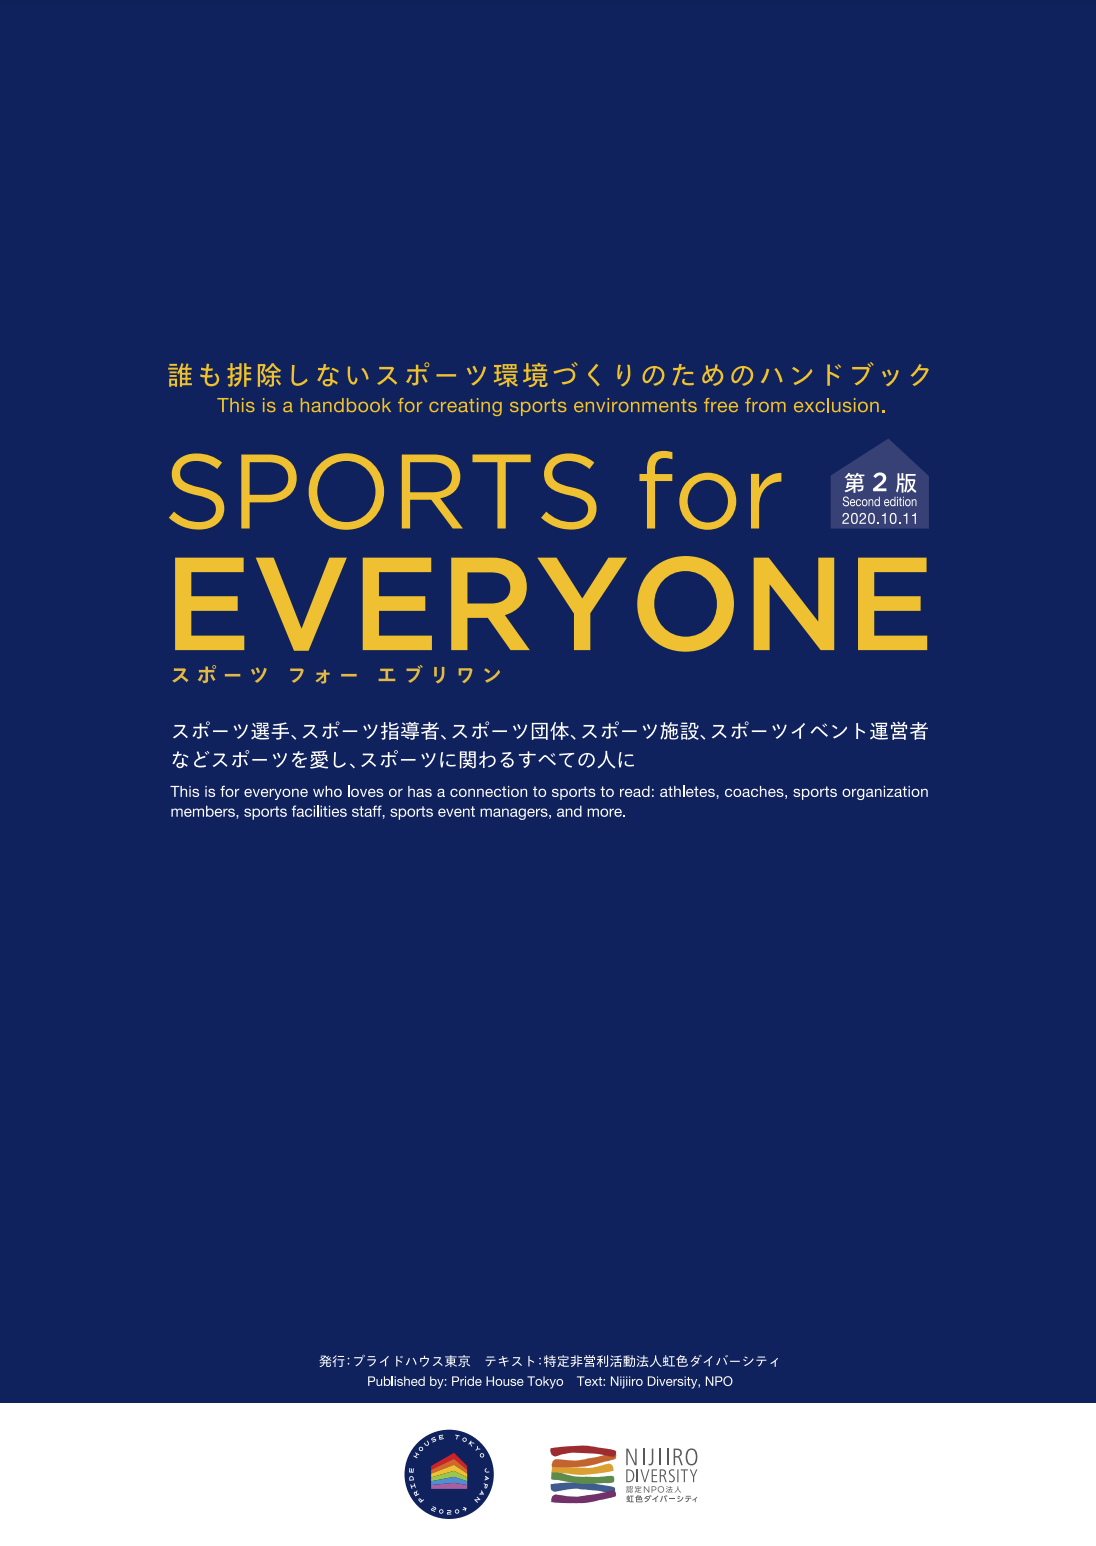 Sports for Everyone